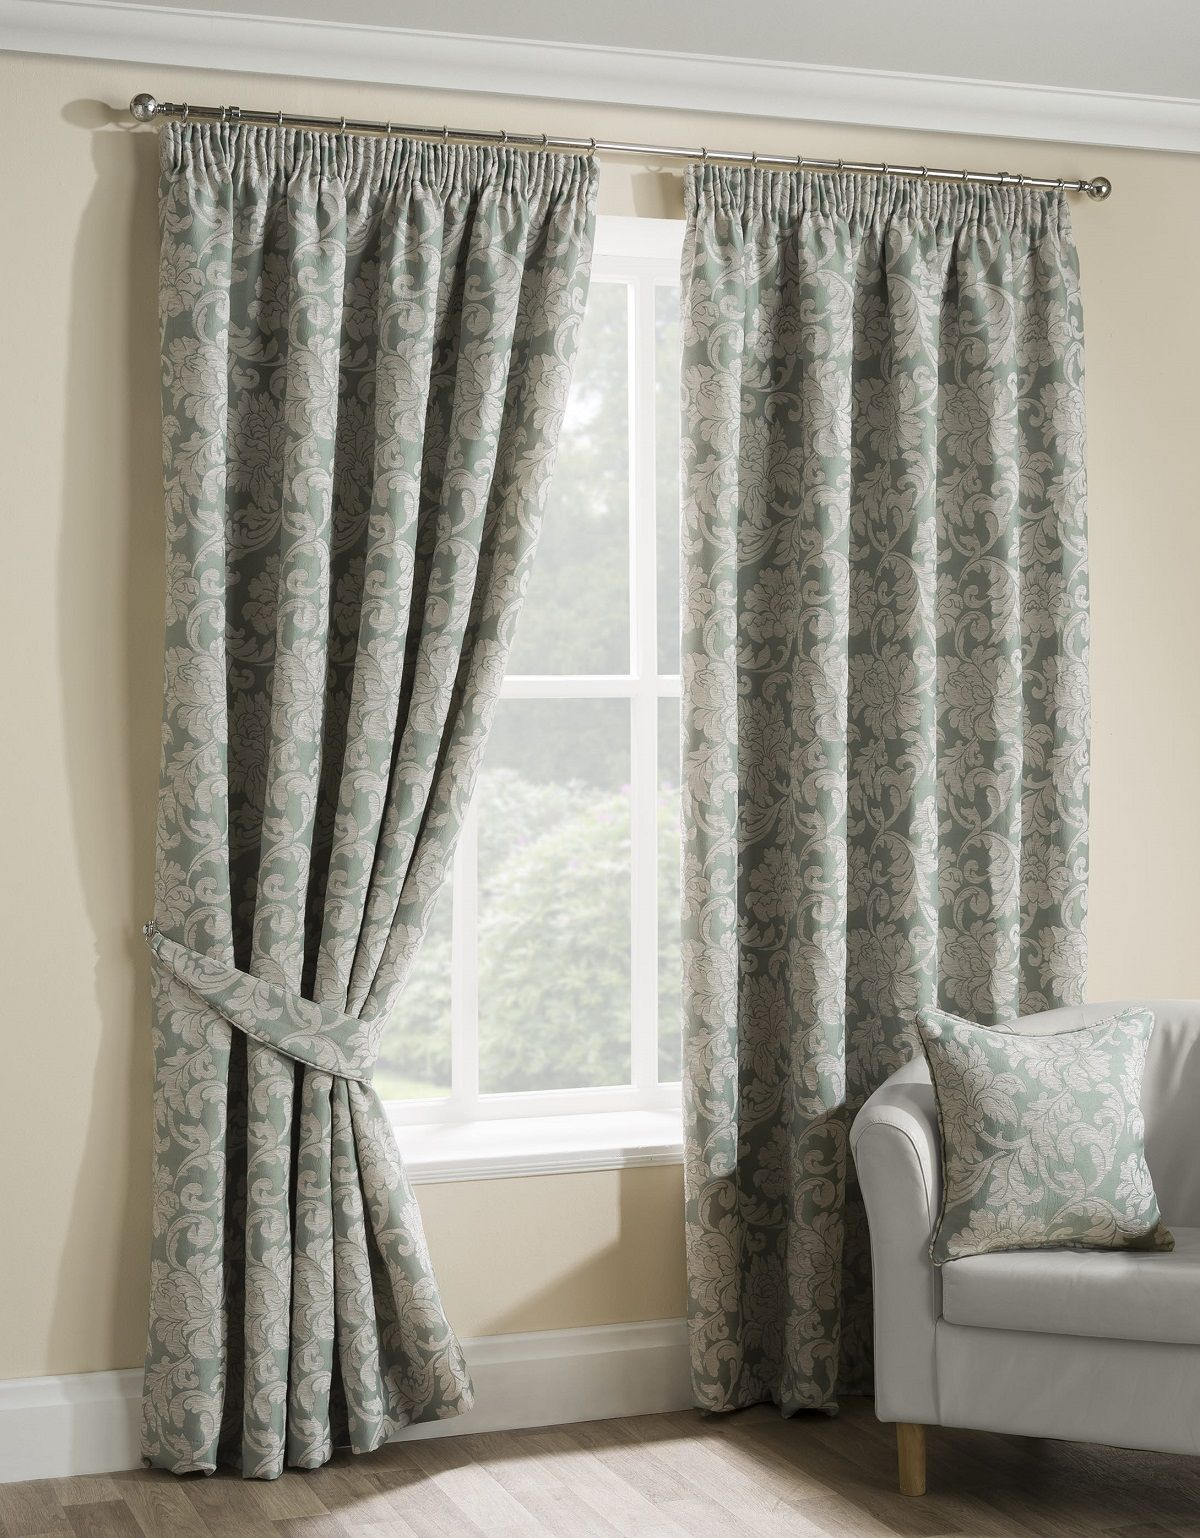 Luxury Ready Made Curtains In This Heavy Woven Fabric Assorted Sizes Available Cool Curtains Pleated Curtains Room Darkening Curtains